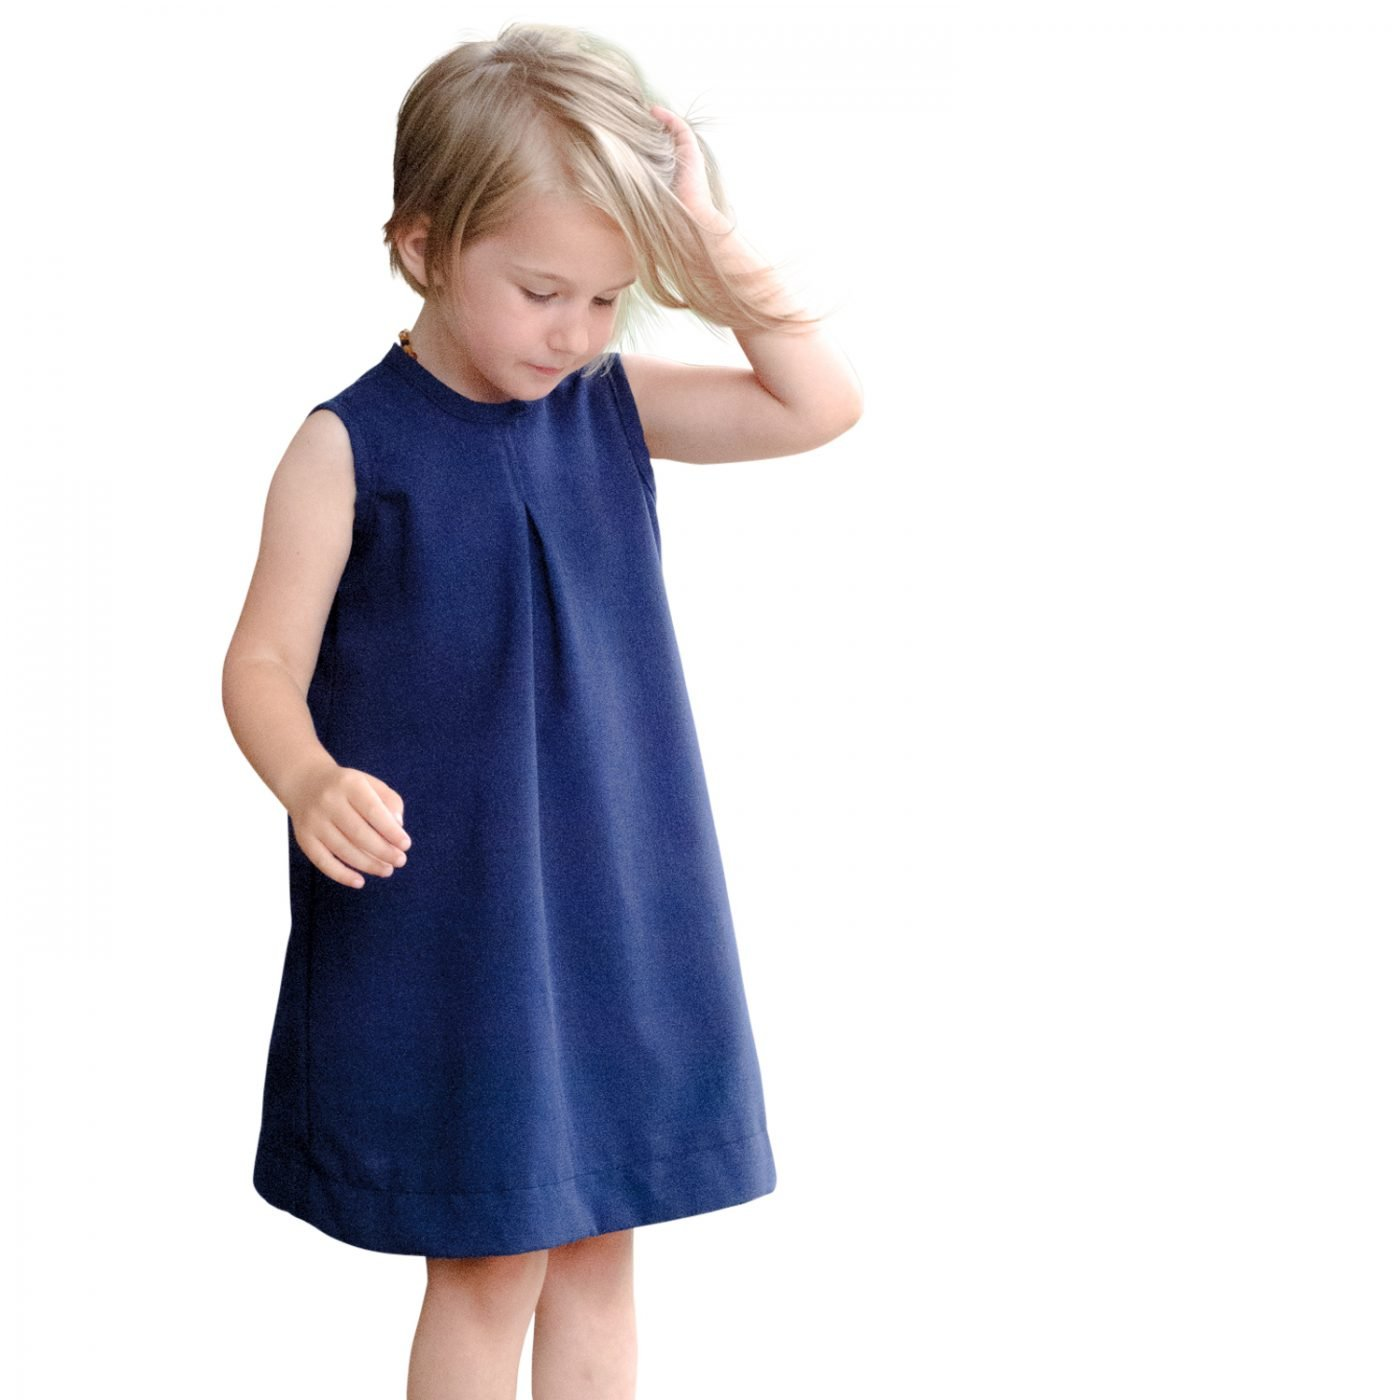 The Tropfchen Dress PDF Sewing Pattern